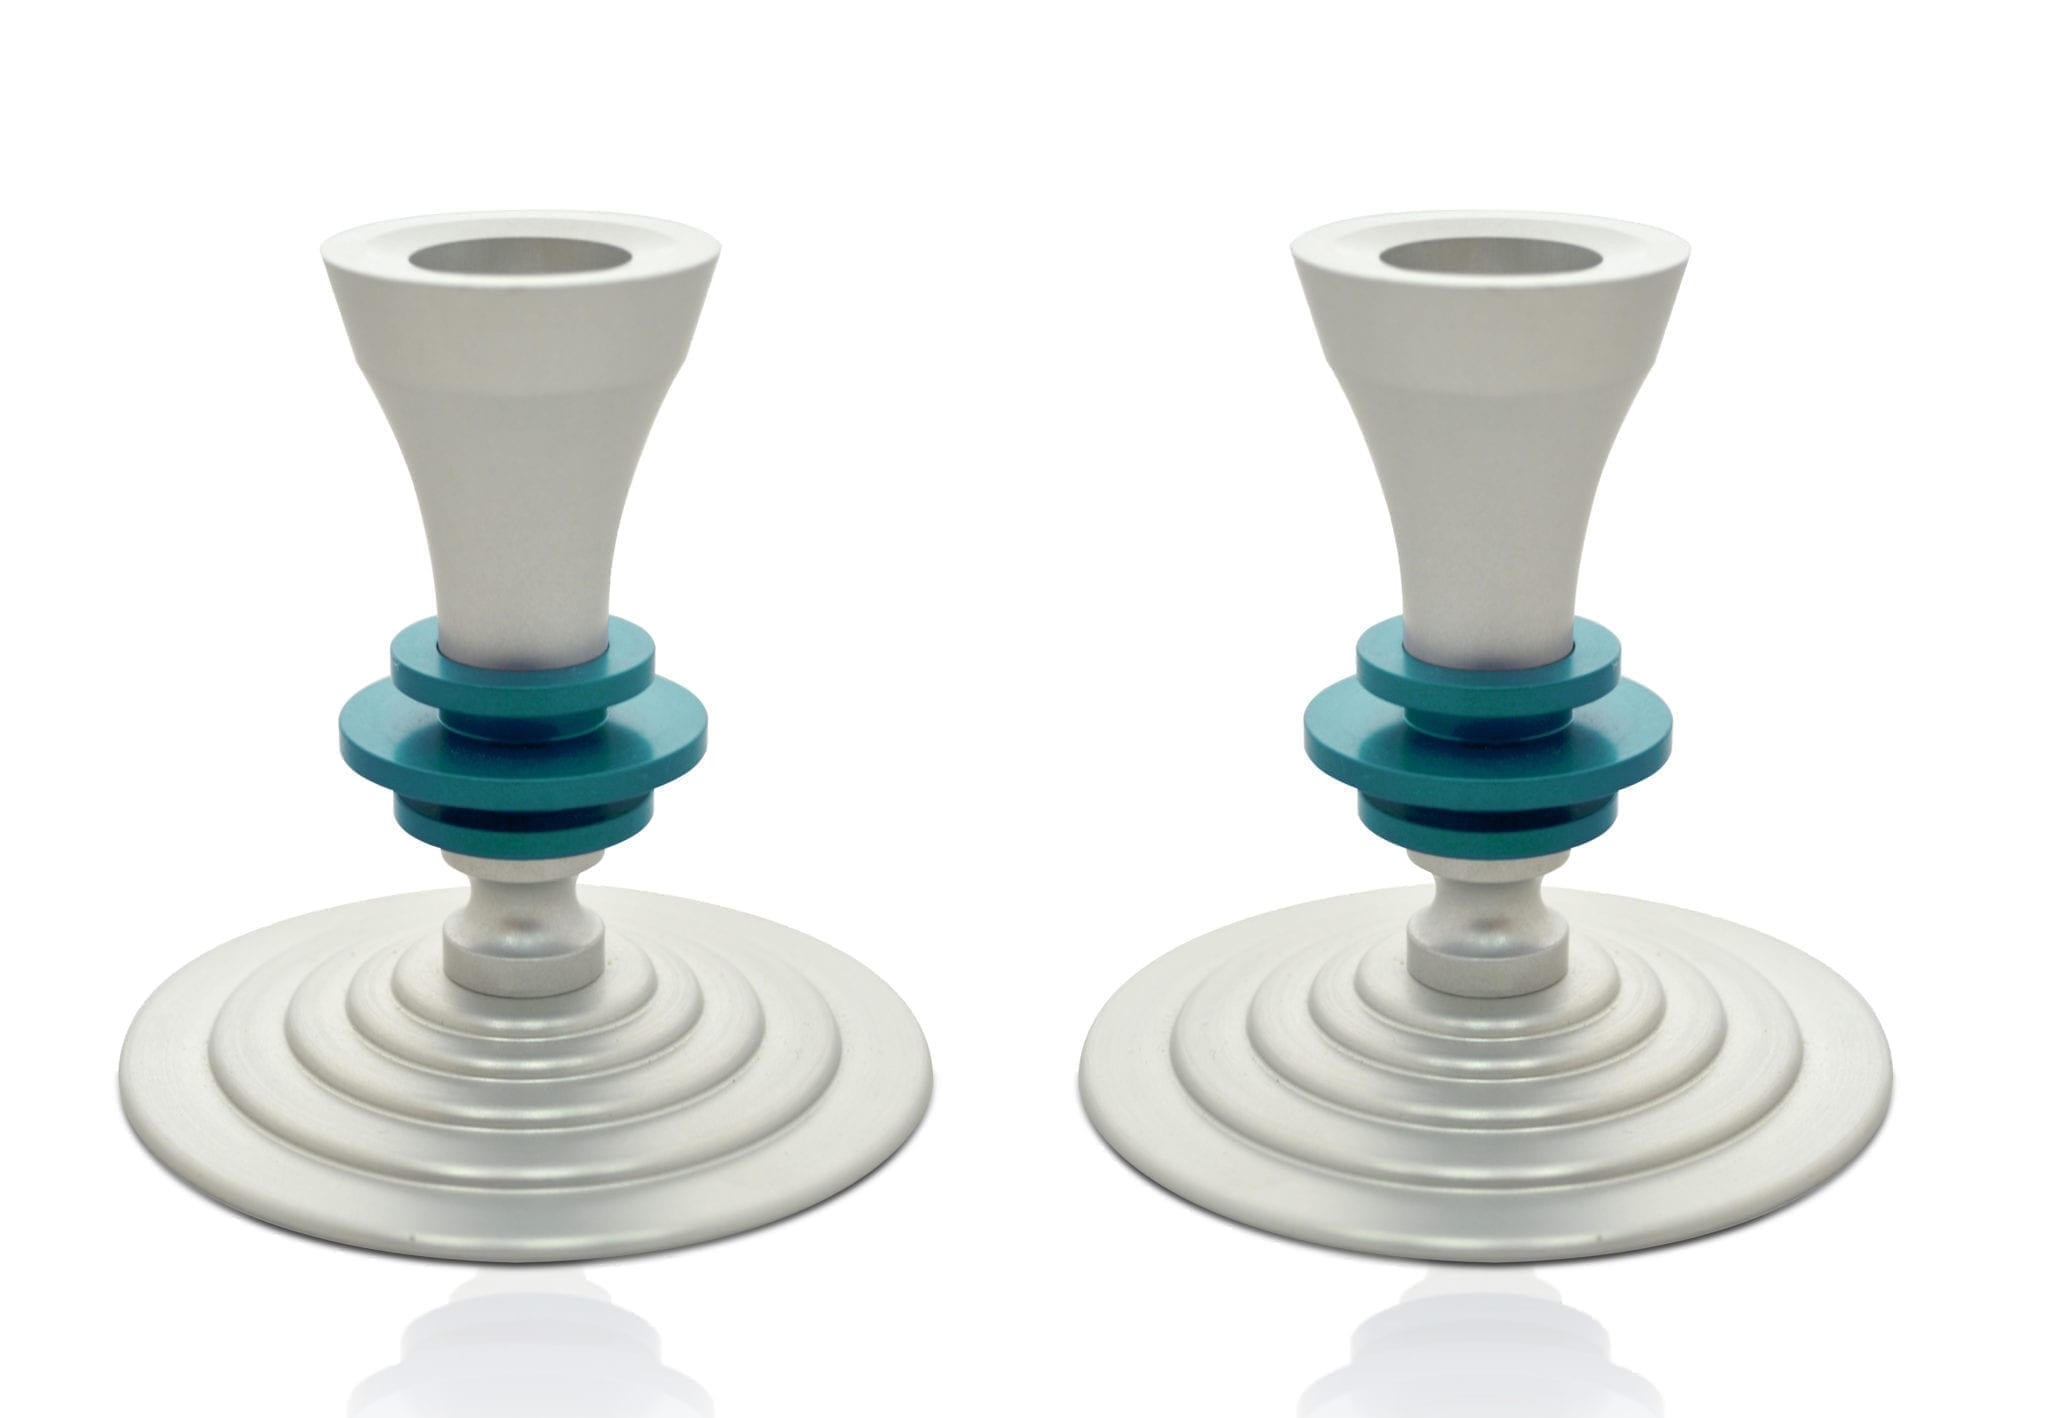 Mini elegant candlesticks, anodized aluminum Judaica & home decor made in Israel by Nadav Art